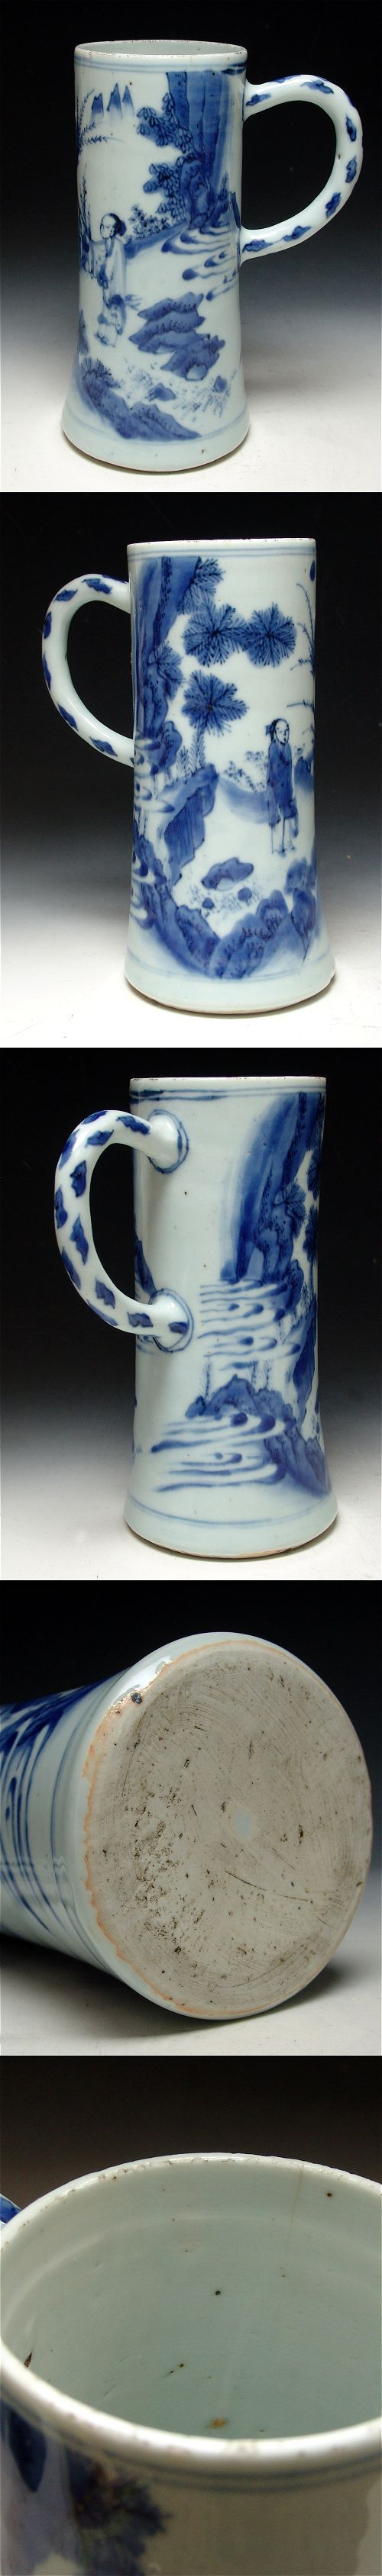 Tankard of slender shape in underglaze Blue and White decoration.  Antique Chinese Porcelain, Ming porcelain.